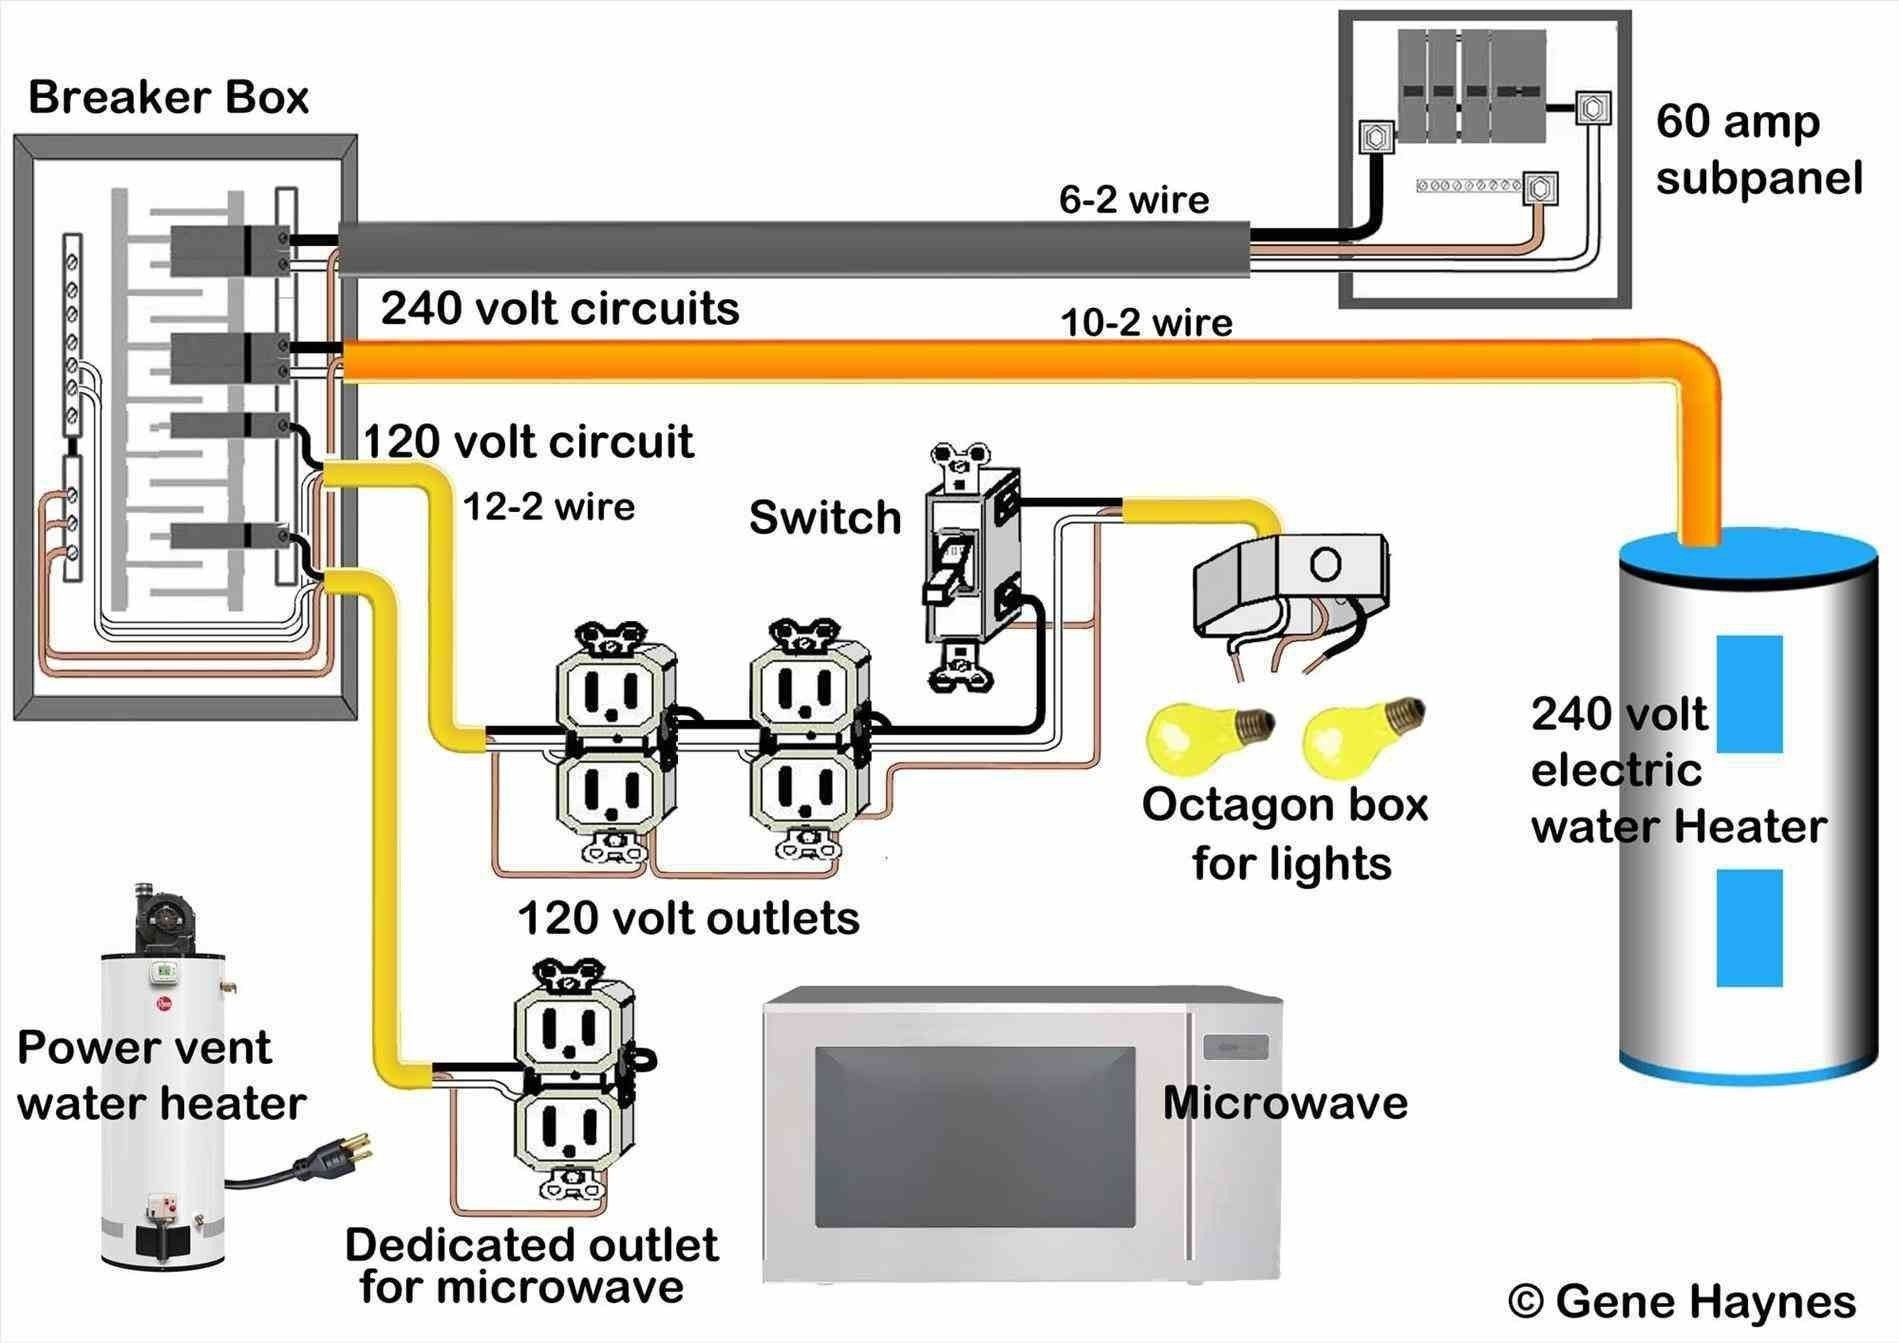 Lovely Wiring Diagram Ring Main Sockets Diagrams Digramssample Diagramimages Wiringdiagramsample Wir Outlet Wiring House Wiring Electrical Circuit Diagram